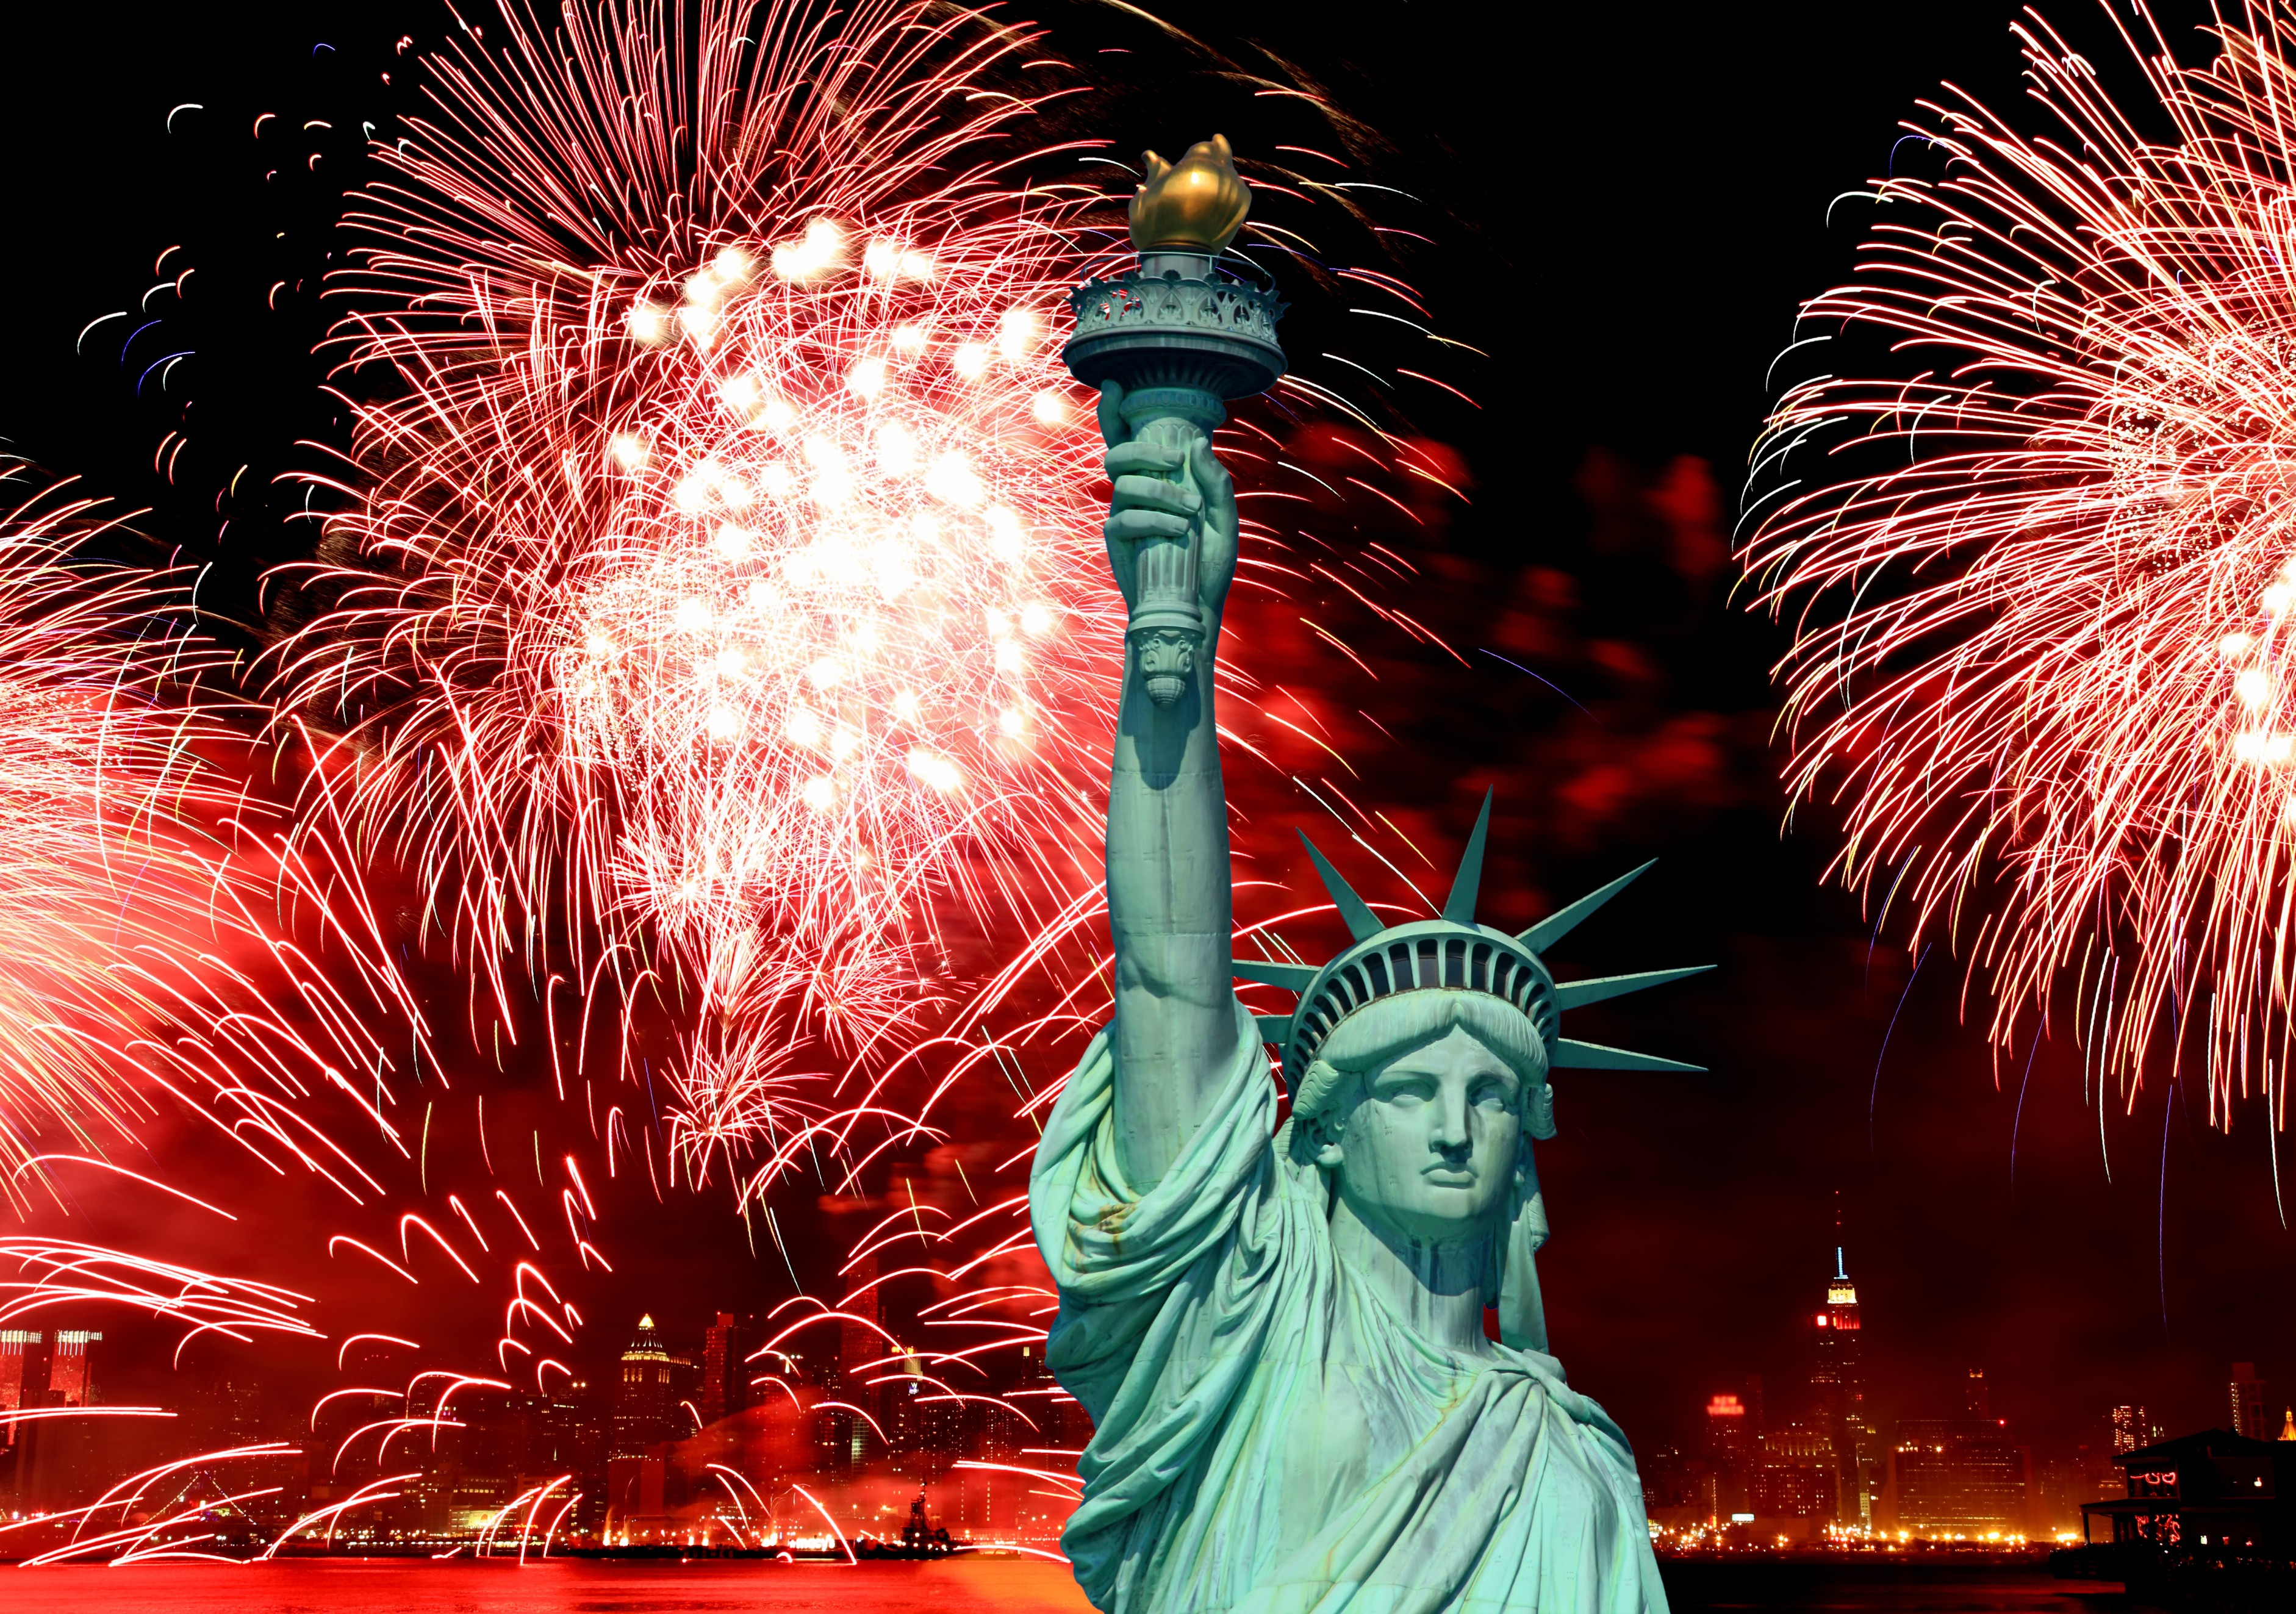 Best Nba Wallpapers Hd Wallpaper Independence Day Usa Ny Statue Of Liberty